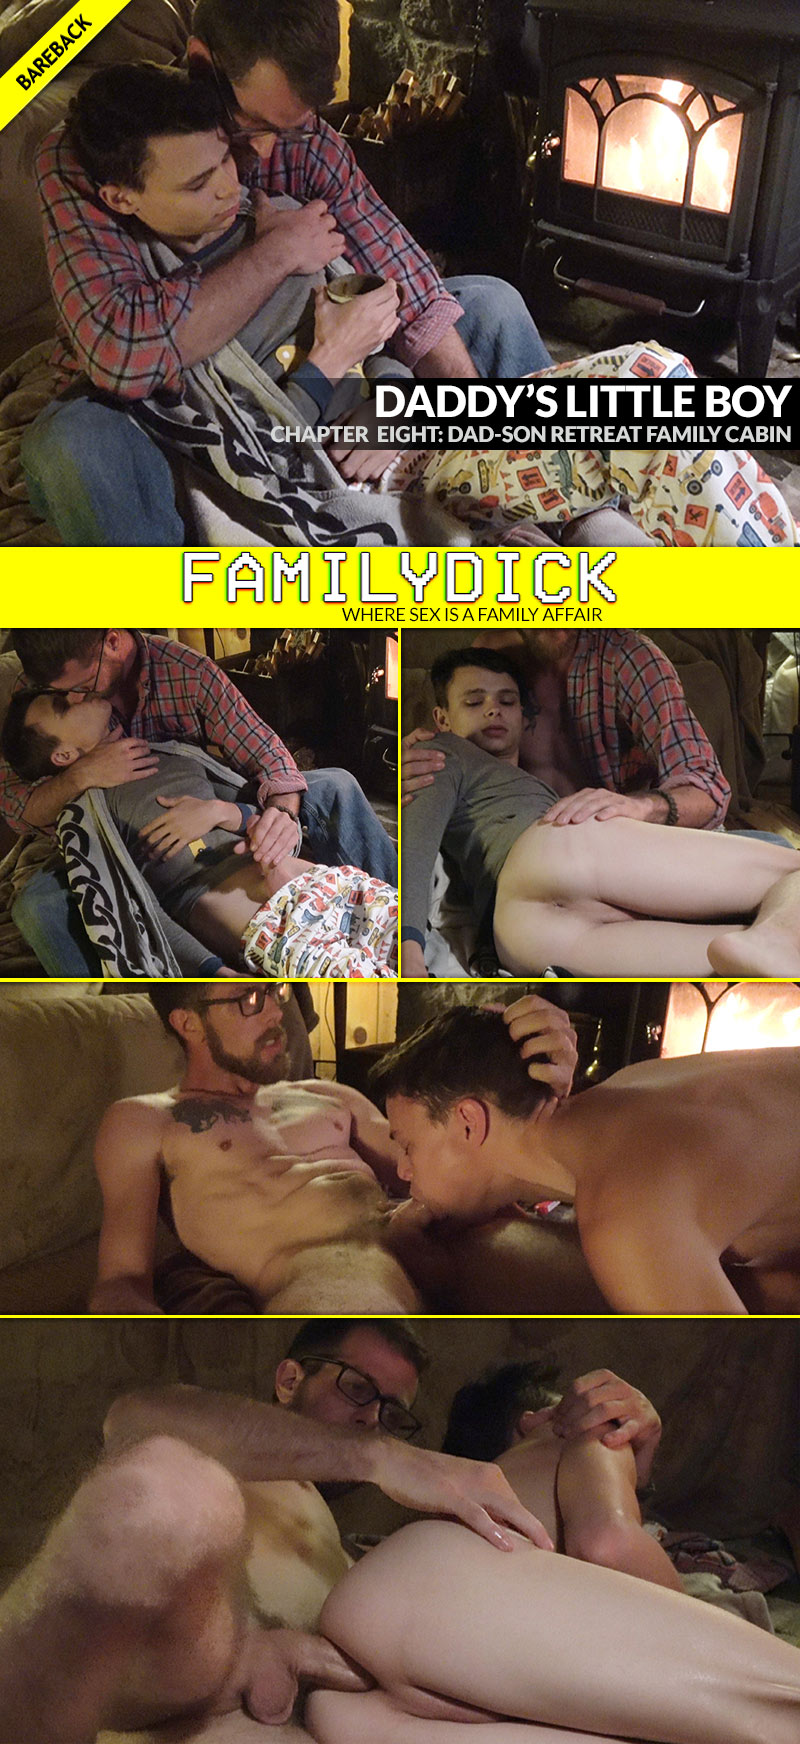 Daddy's Little Boy, Chapter 8: DAD-SON RETREAT FAMILY CABIN (with Jacob Armstrong (Dad) and Austin Armstrong (Son)) at FamilyDick